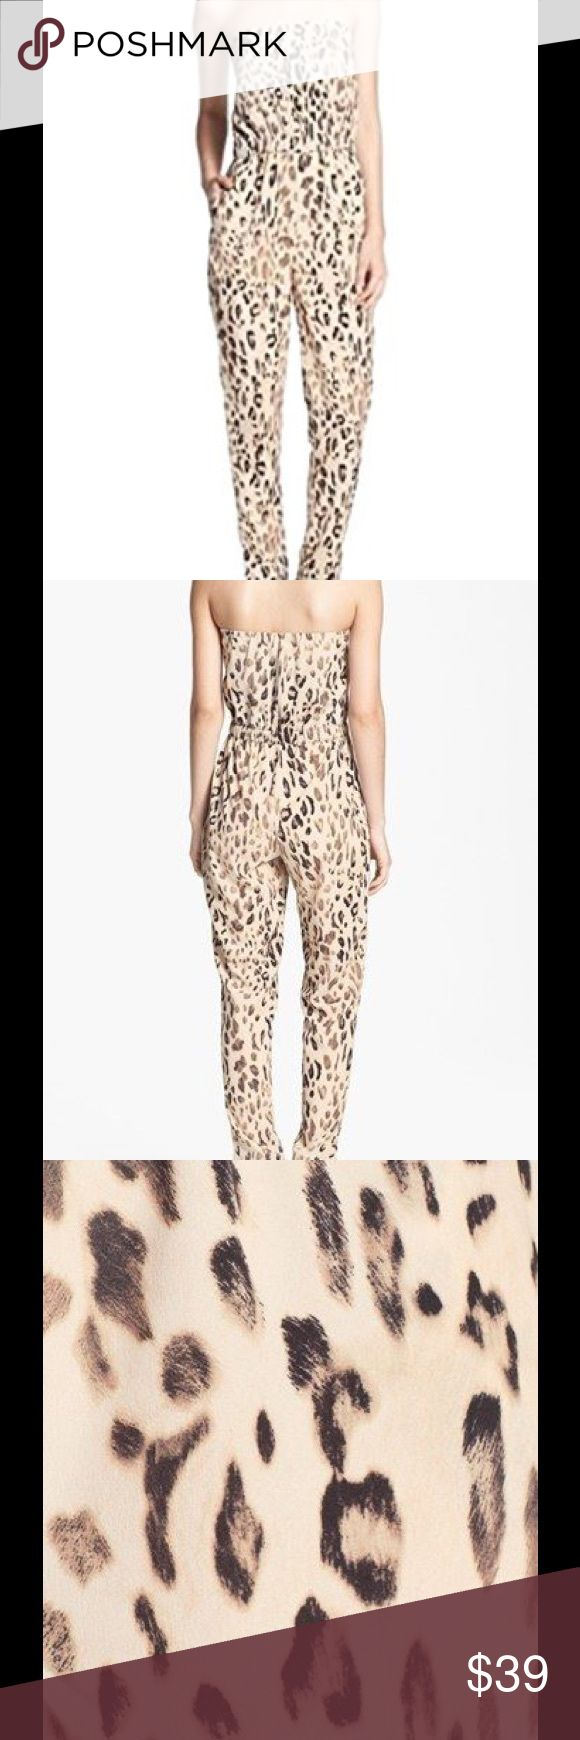 WAYF Animal Print Jumpsuit, Size large WAYF black brown beige strapless animal print Jumpsuit.  Size Large.  Lined upper.  Side seam pockets, Leopard print.  Material: 100% Polyester.  Dry Clean.  Made in USA.  Condition: New Wayf Pants Jumpsuits & Rompers